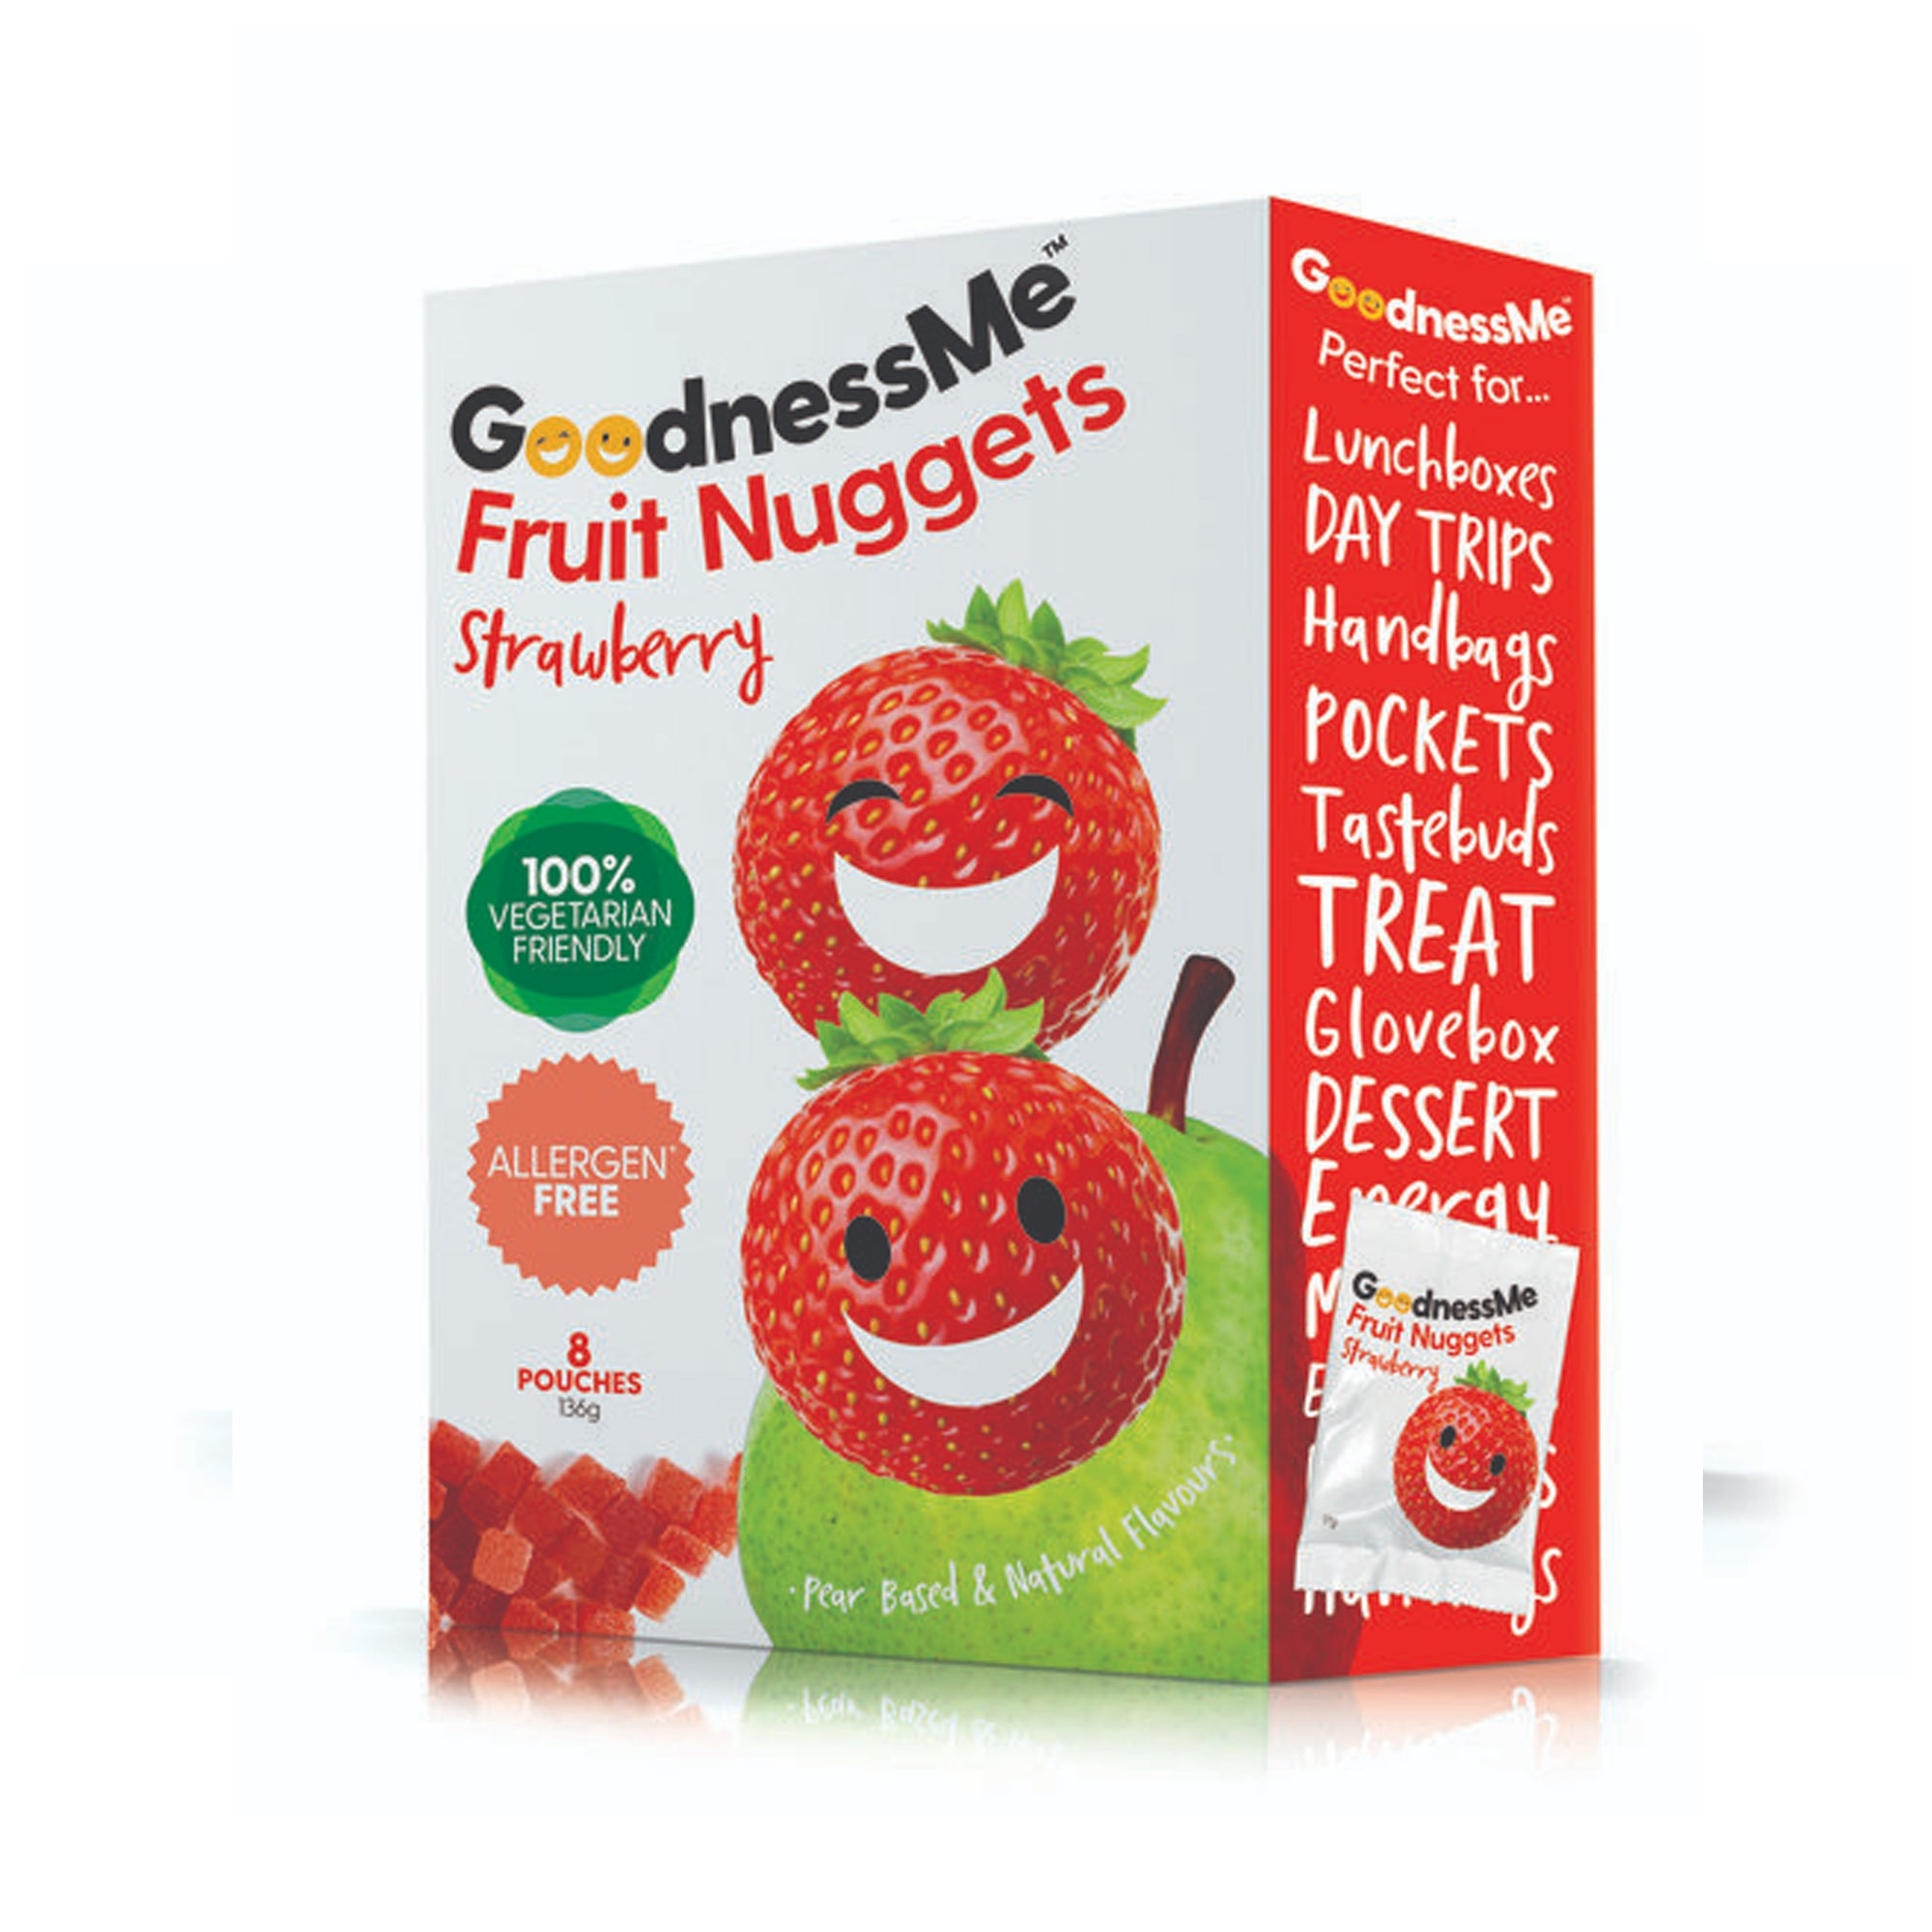 Goodness Me - Fruit Nuggets - Strawberry 119g